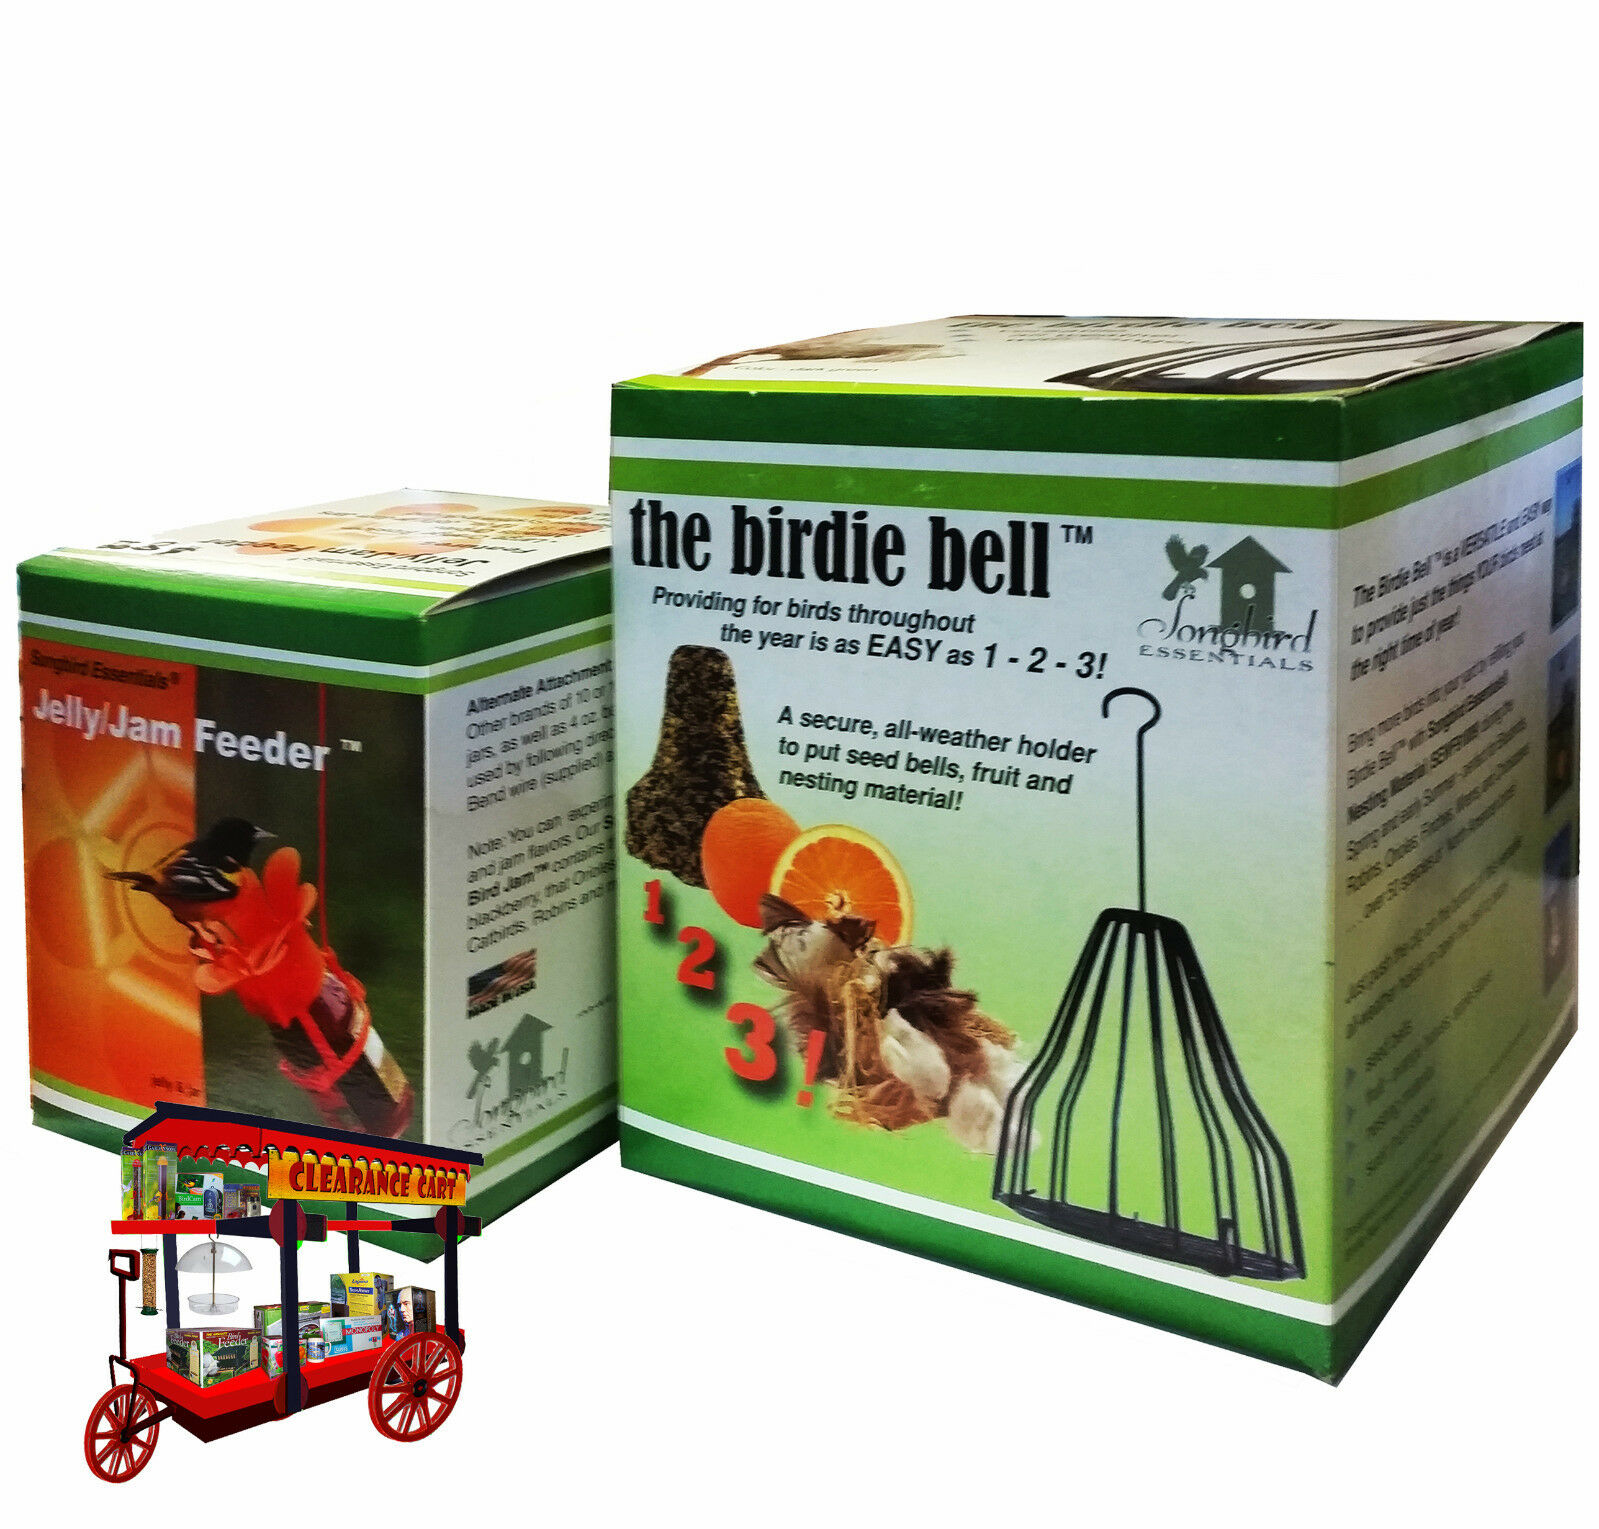 Birdie Bell & Jelly Jar Feeder Combo